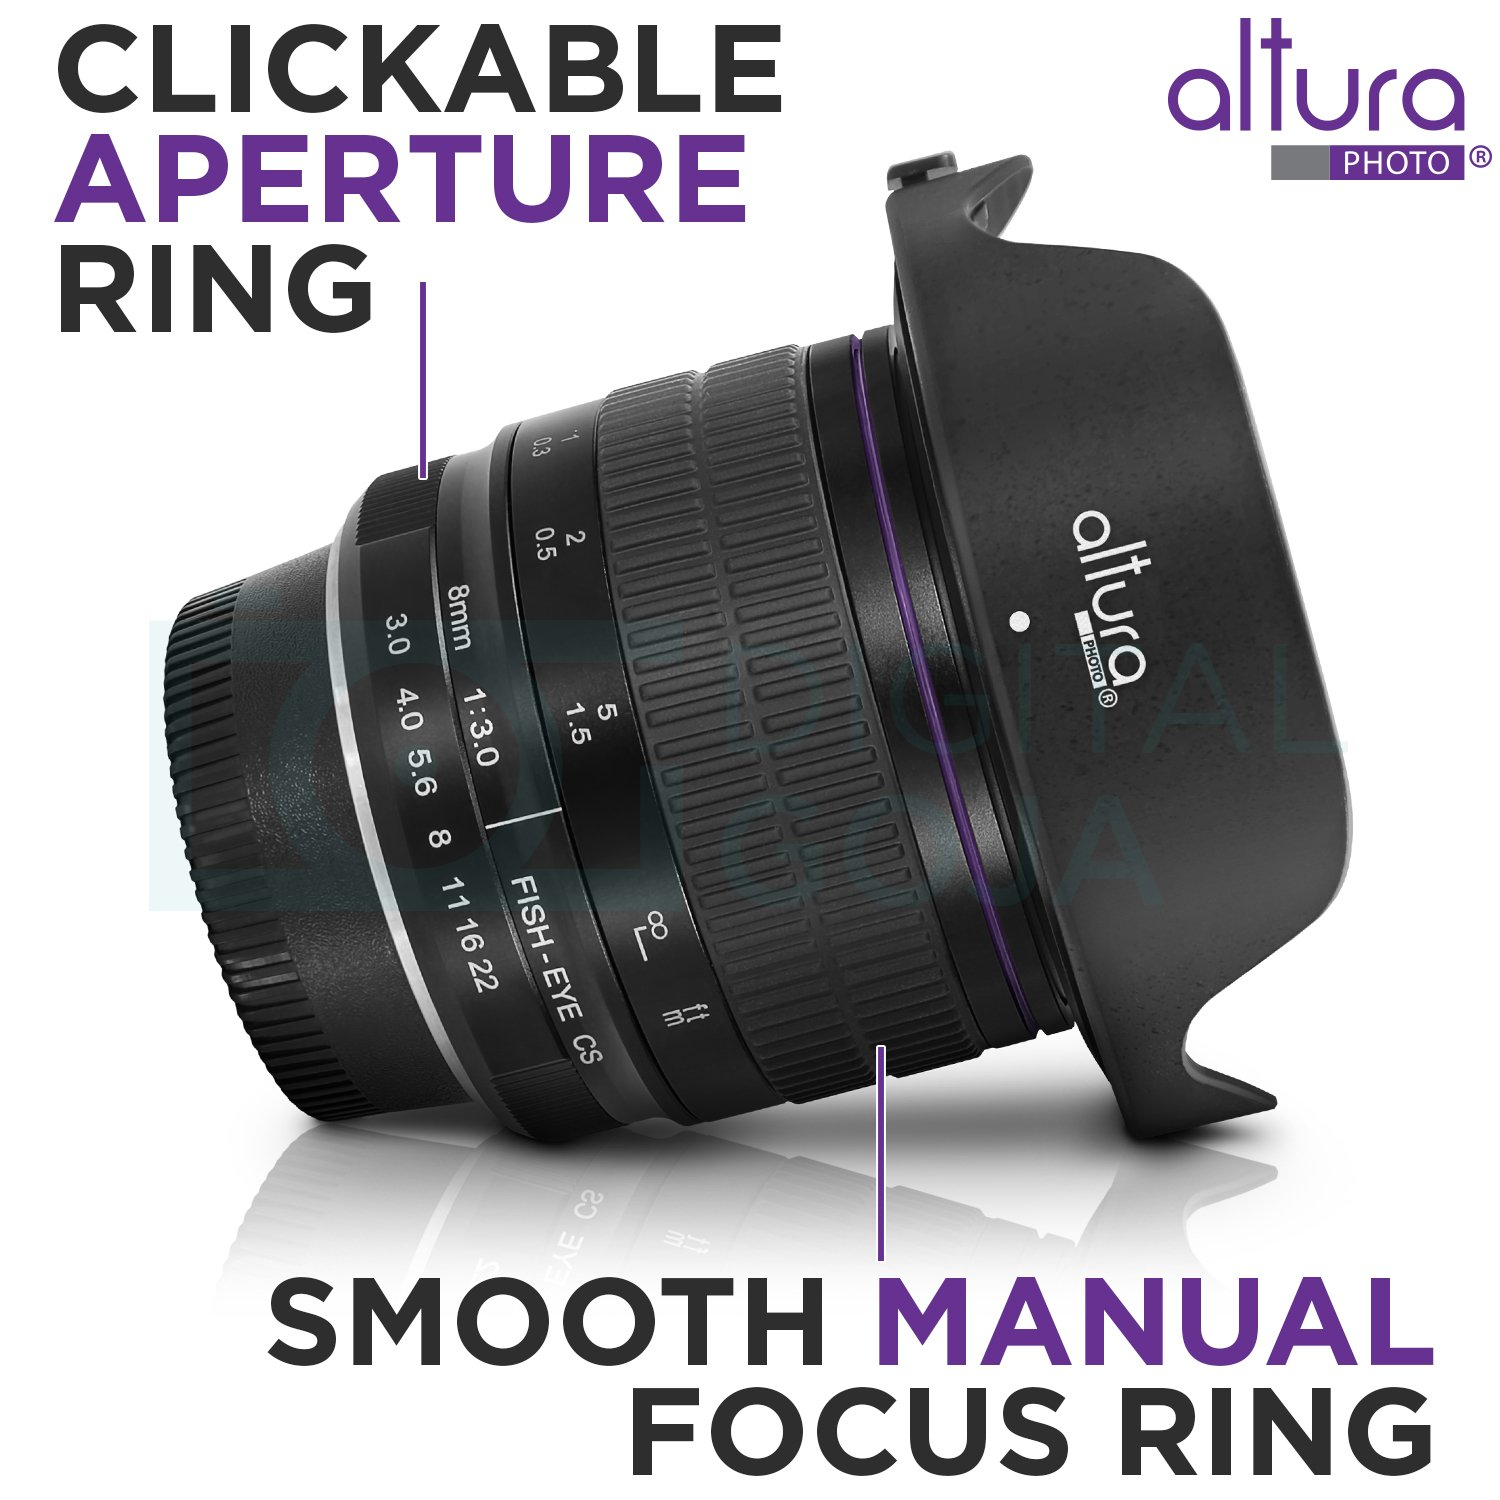 Altura Photo 8MM f/3.0 Fisheye Lens for Nikon DSLR AP-8MN Professional Ultra Wide Angle Aspherical Fixed Lens with Removeable Lens Hood and Protective Carry Case